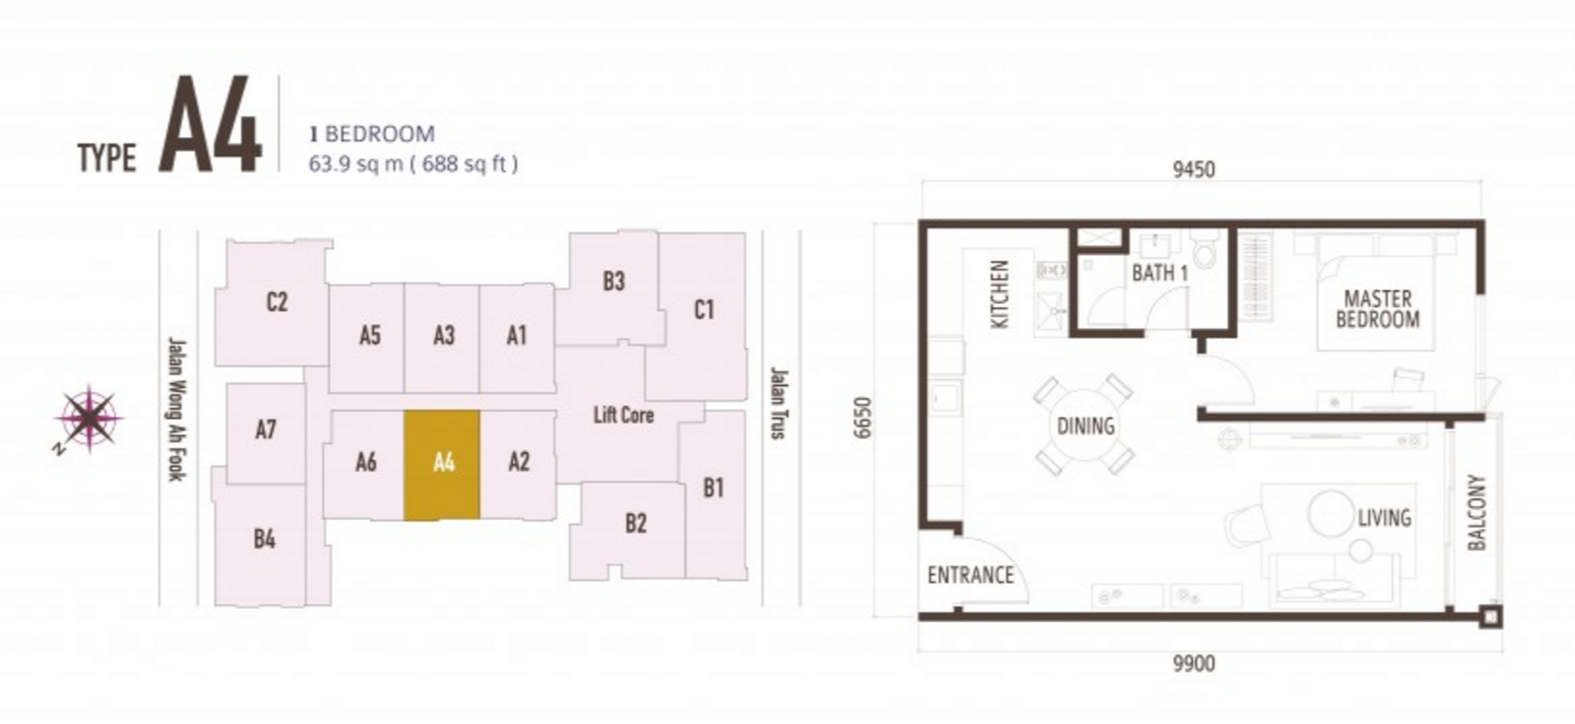 FloorPlan 1 Bedroom Type A4